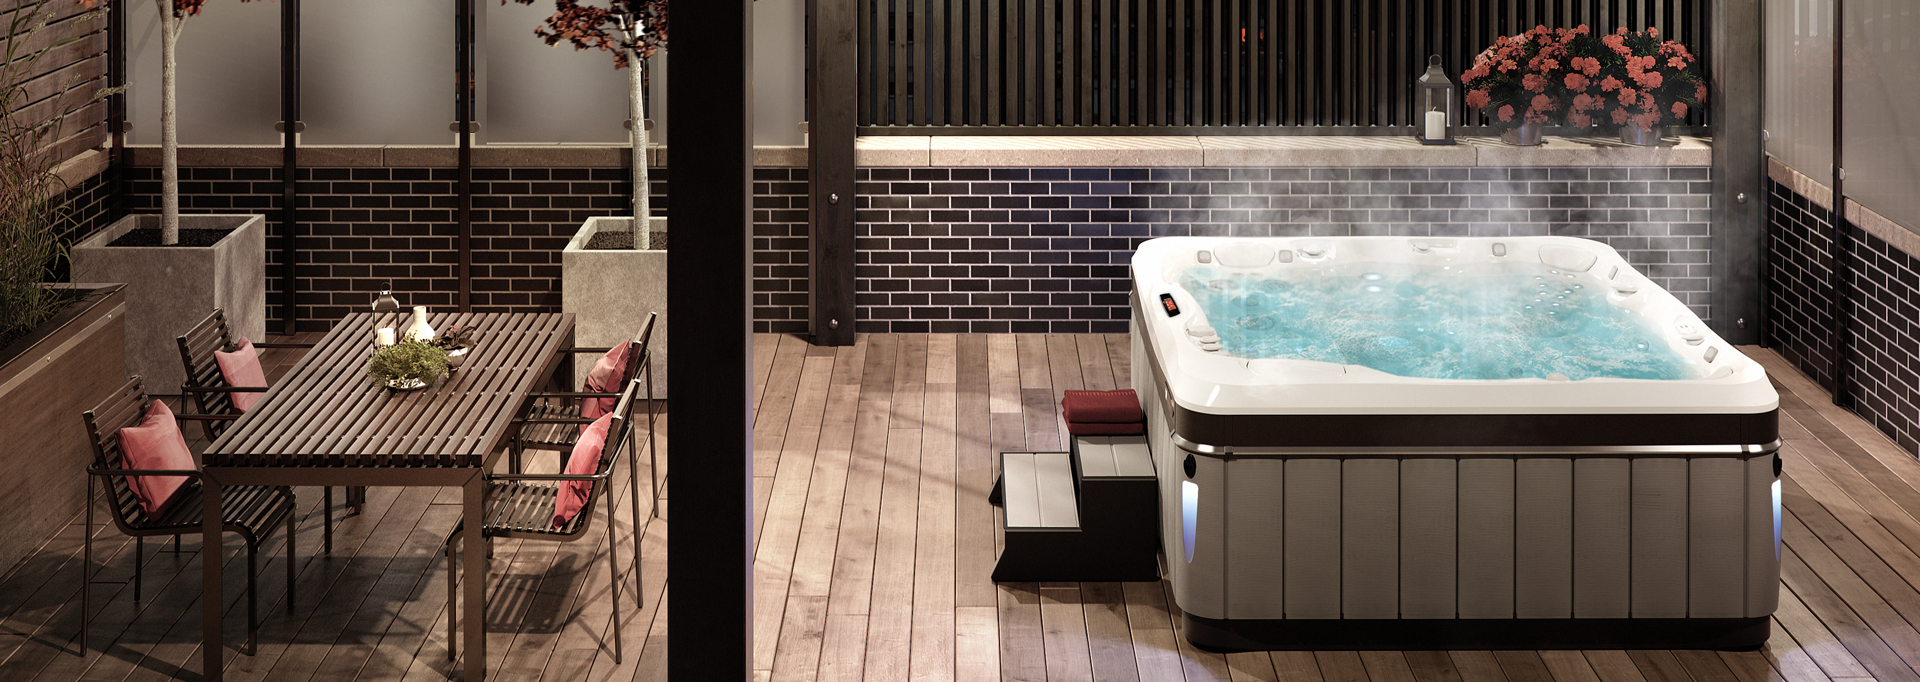 Finest Luxury Spas & Hot Tubs in Knutsford